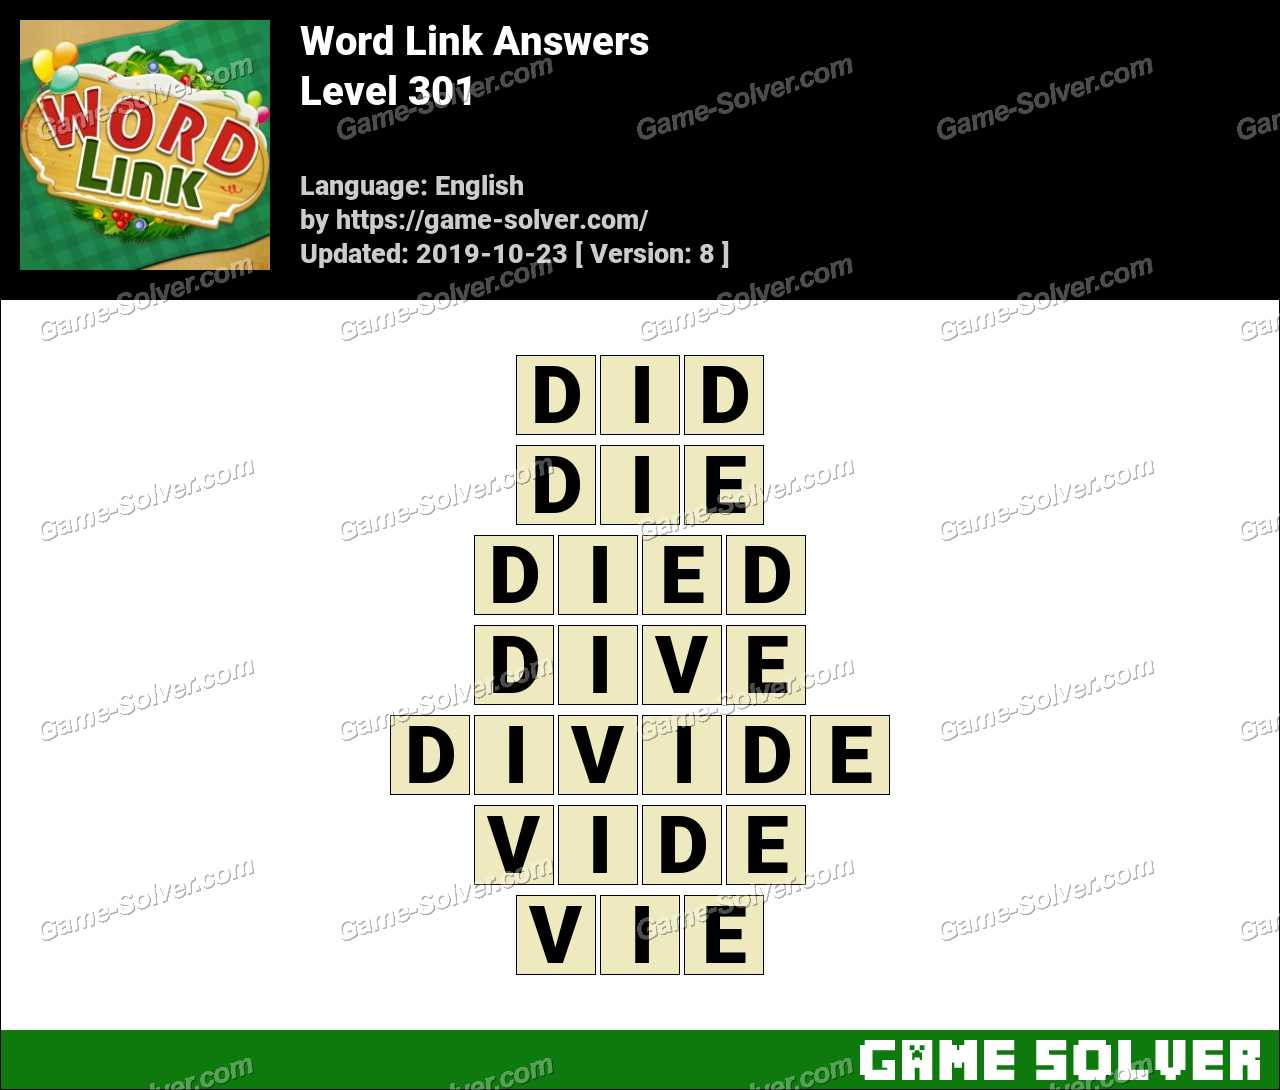 Word Link Level 301 Answers